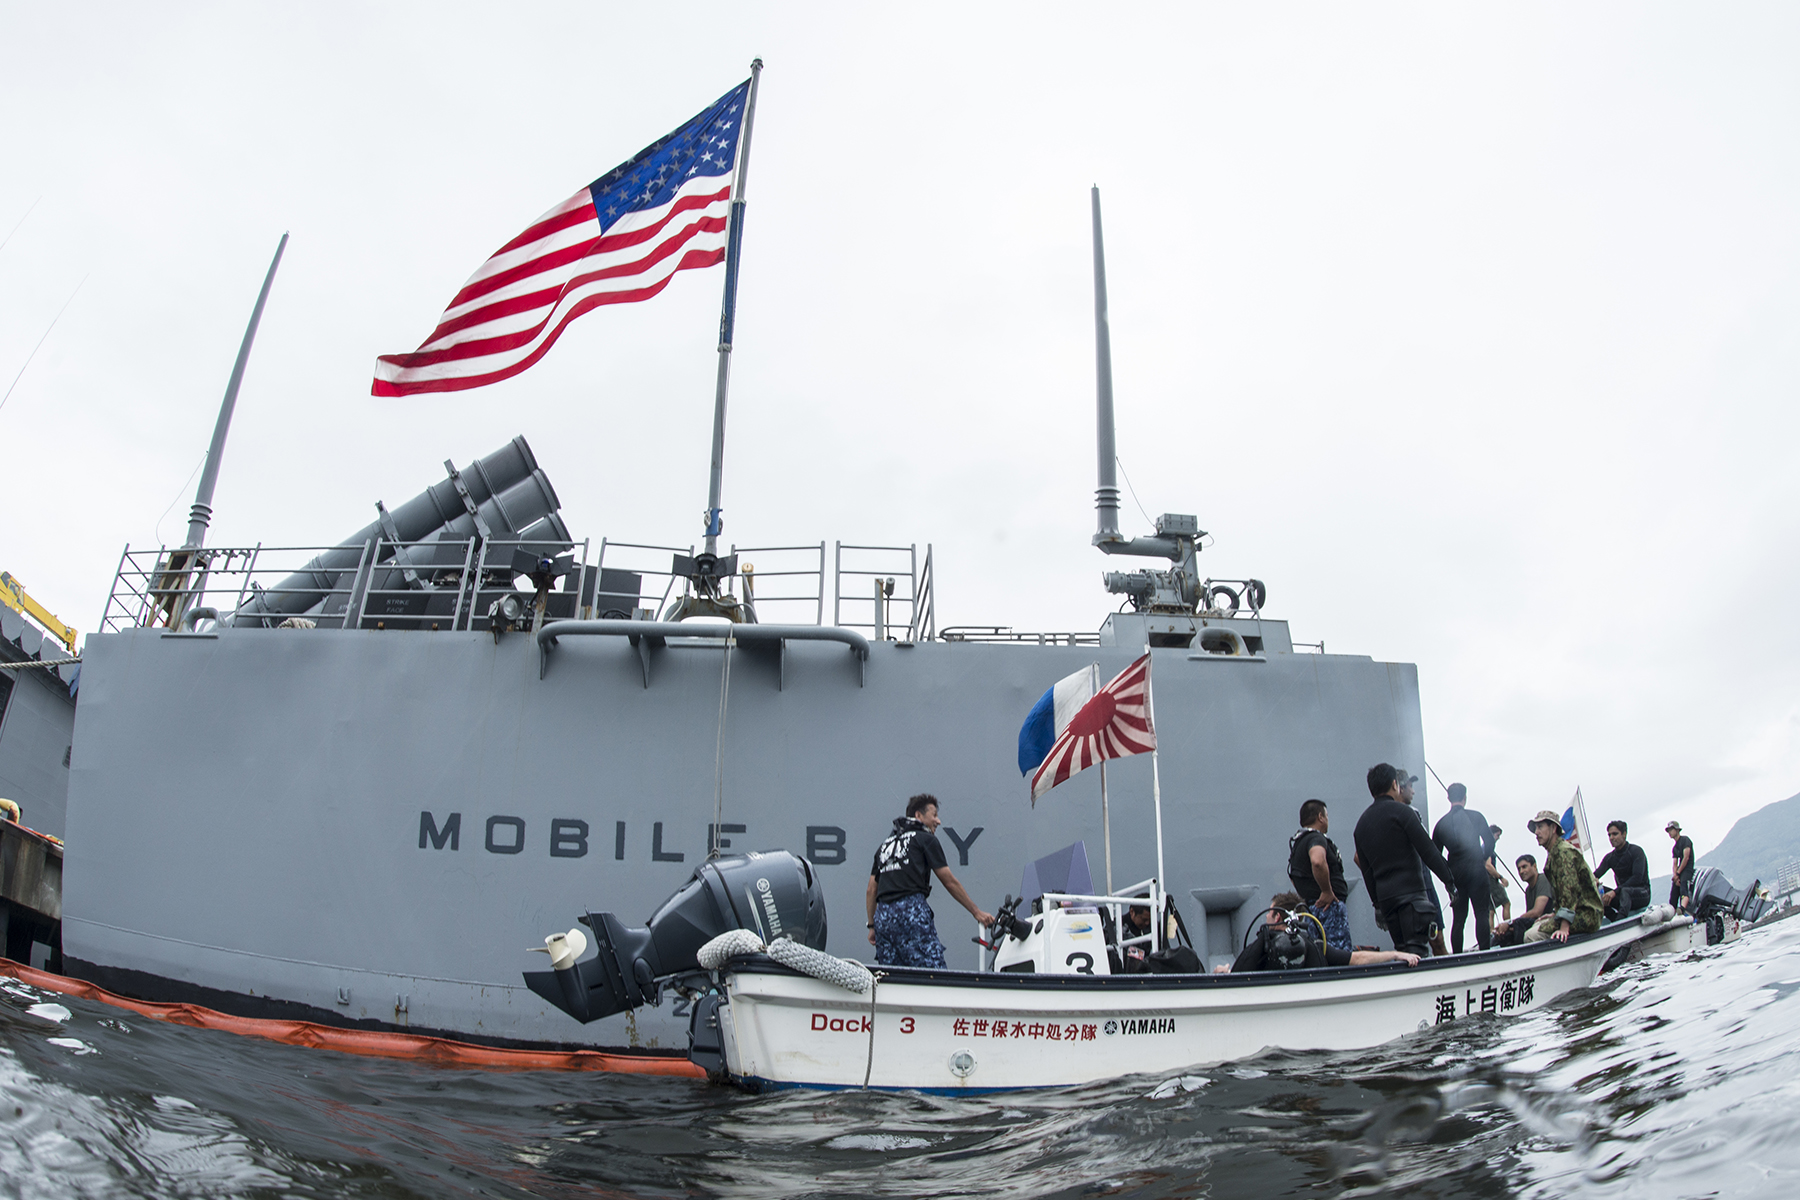 Explosive ordnance disposal technicians from the Indian Navy, Japan Maritime Self-Defense Force and U.S. Navy on a small boat